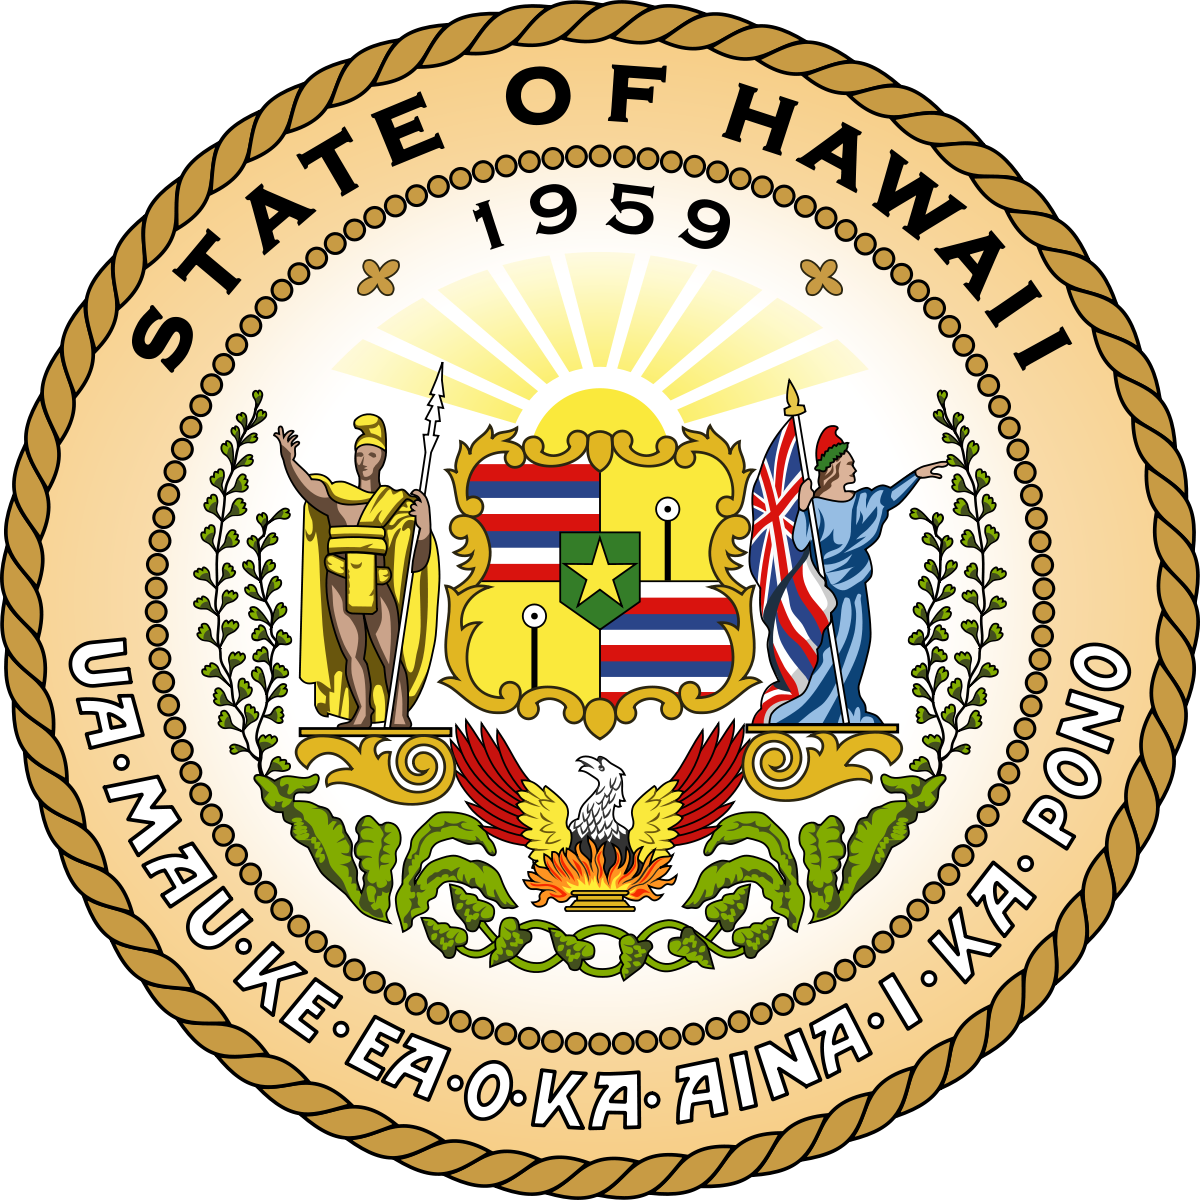 Hawaii Department of Public Safety (DOC) Logo